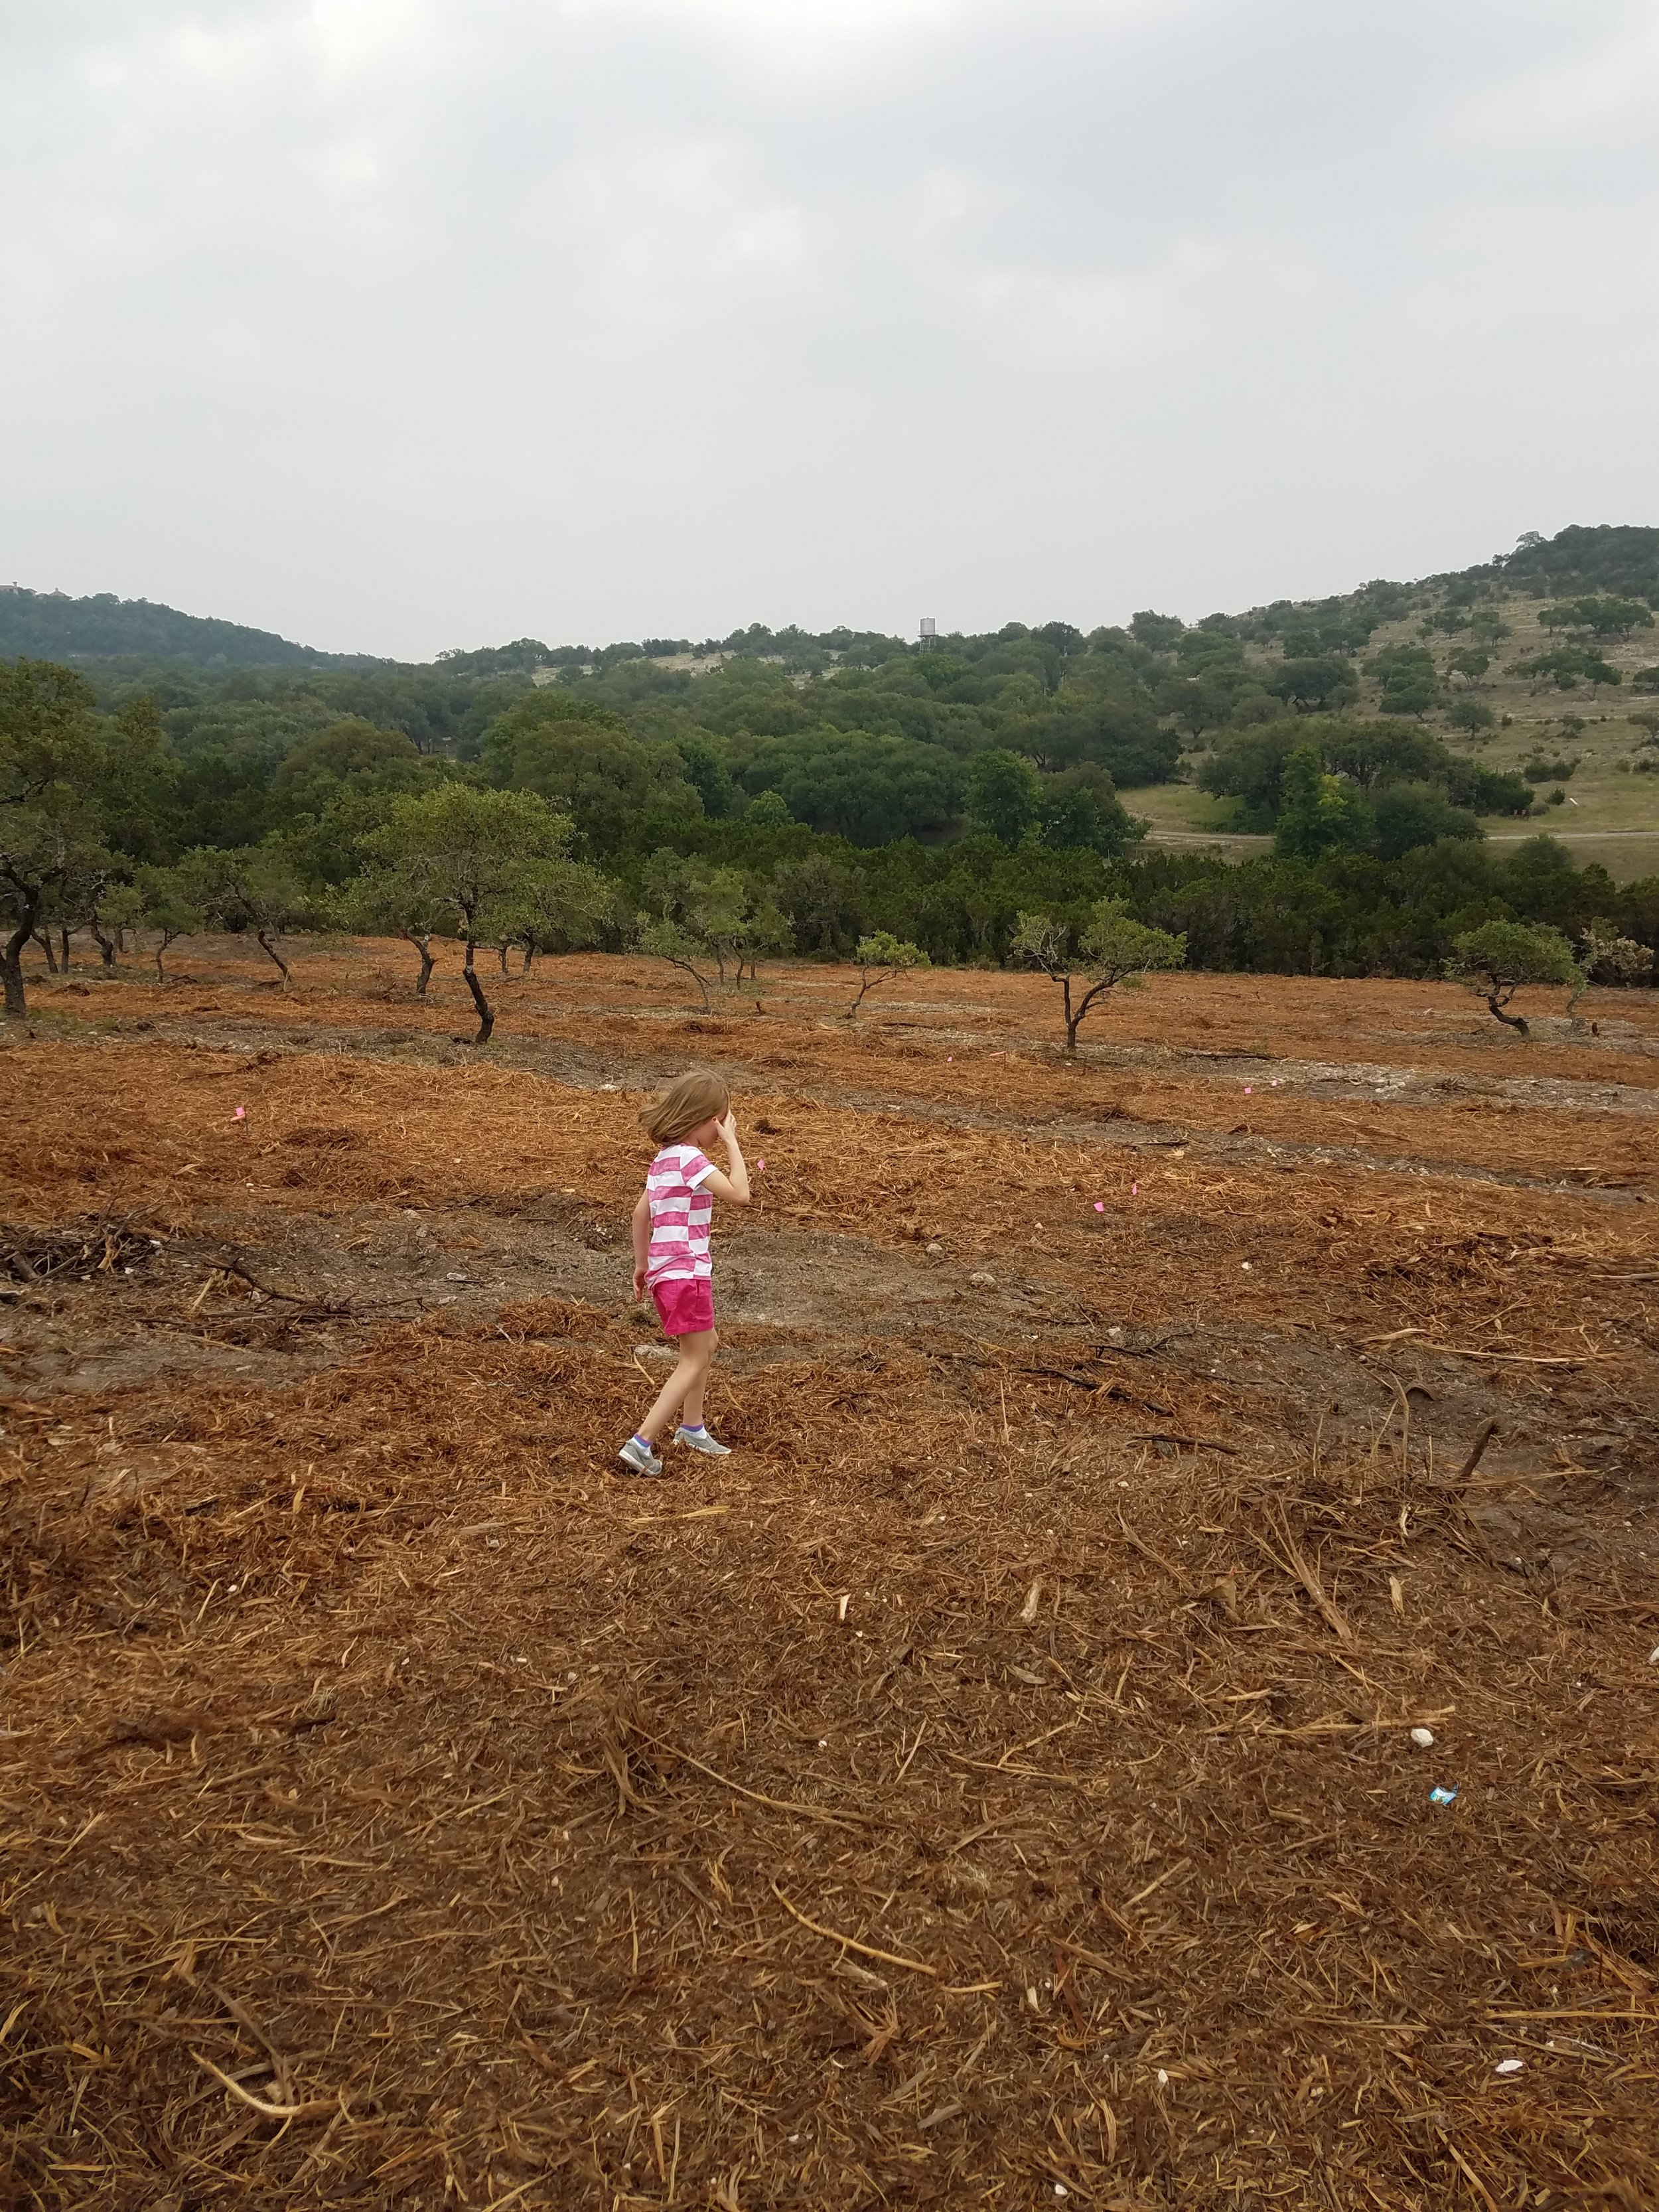 Exploring her new backyard AFTER we fired the first land clearing company and  brought in another  to finish the job. So much better, right?!